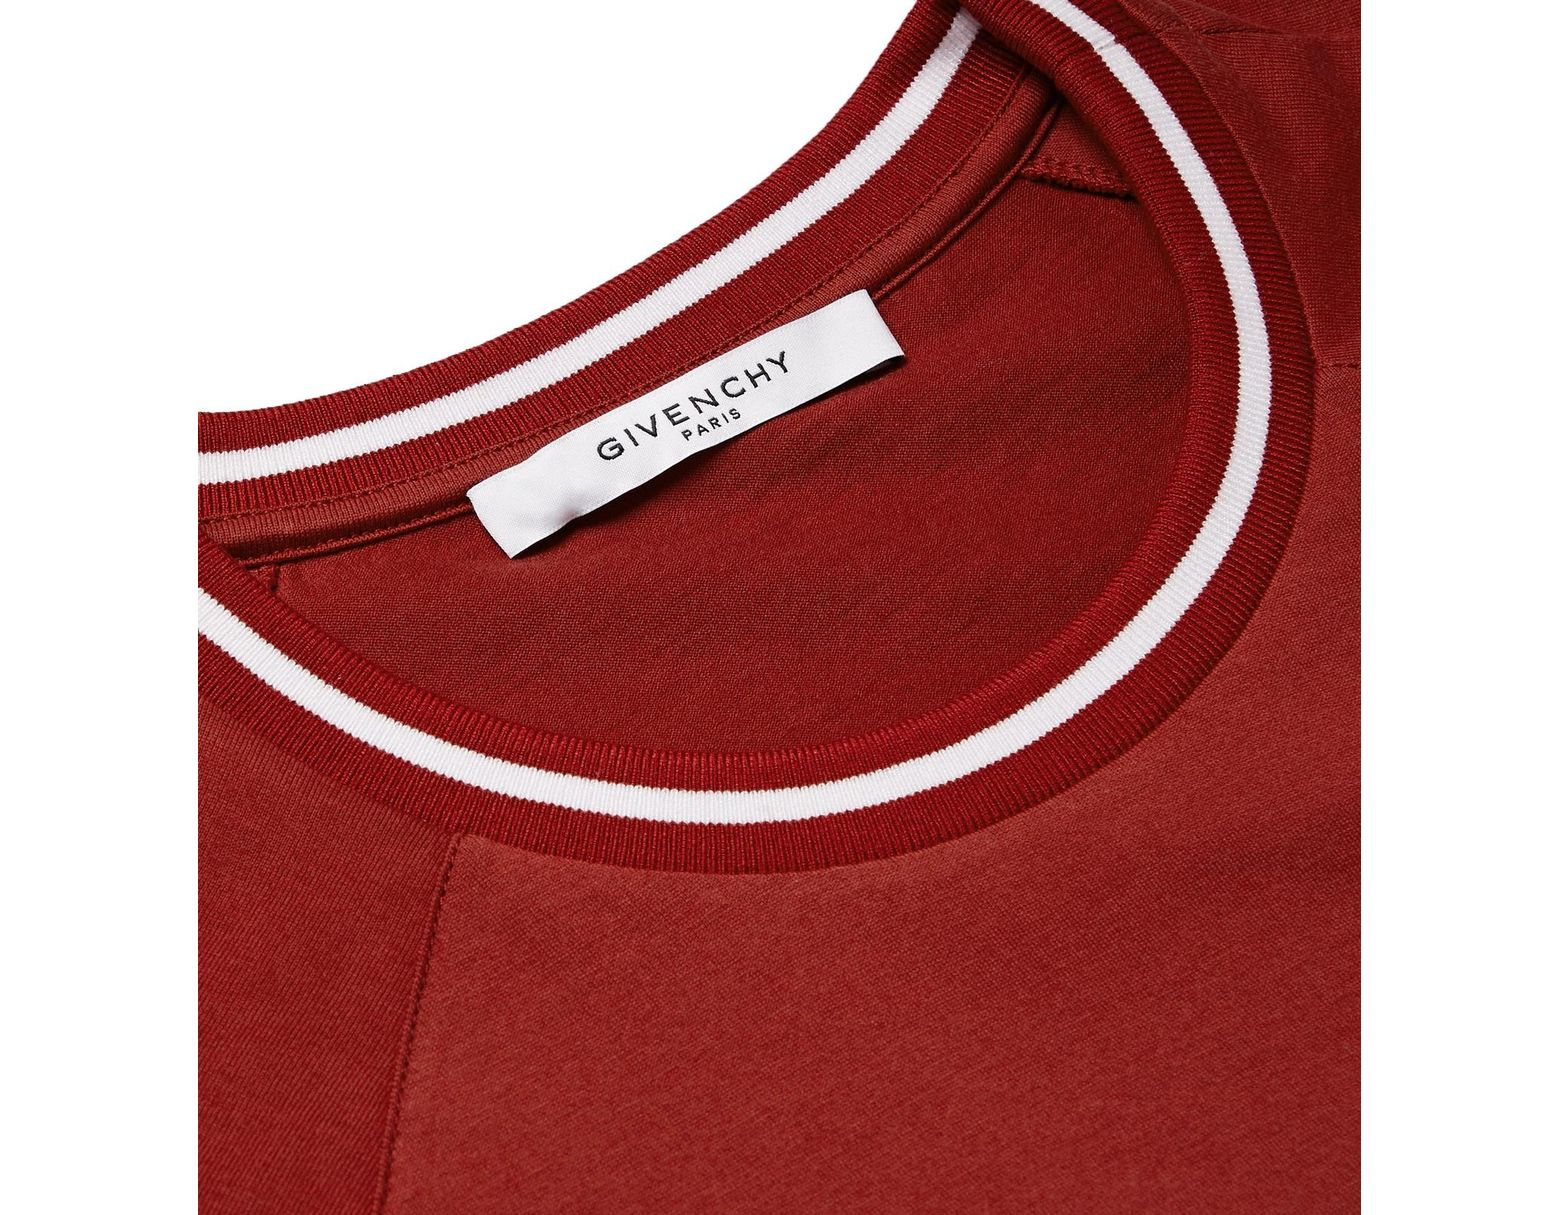 b15dbde1 Givenchy Logo-embroidered Striped Cotton-jersey T-shirt in Red for Men -  Save 60% - Lyst